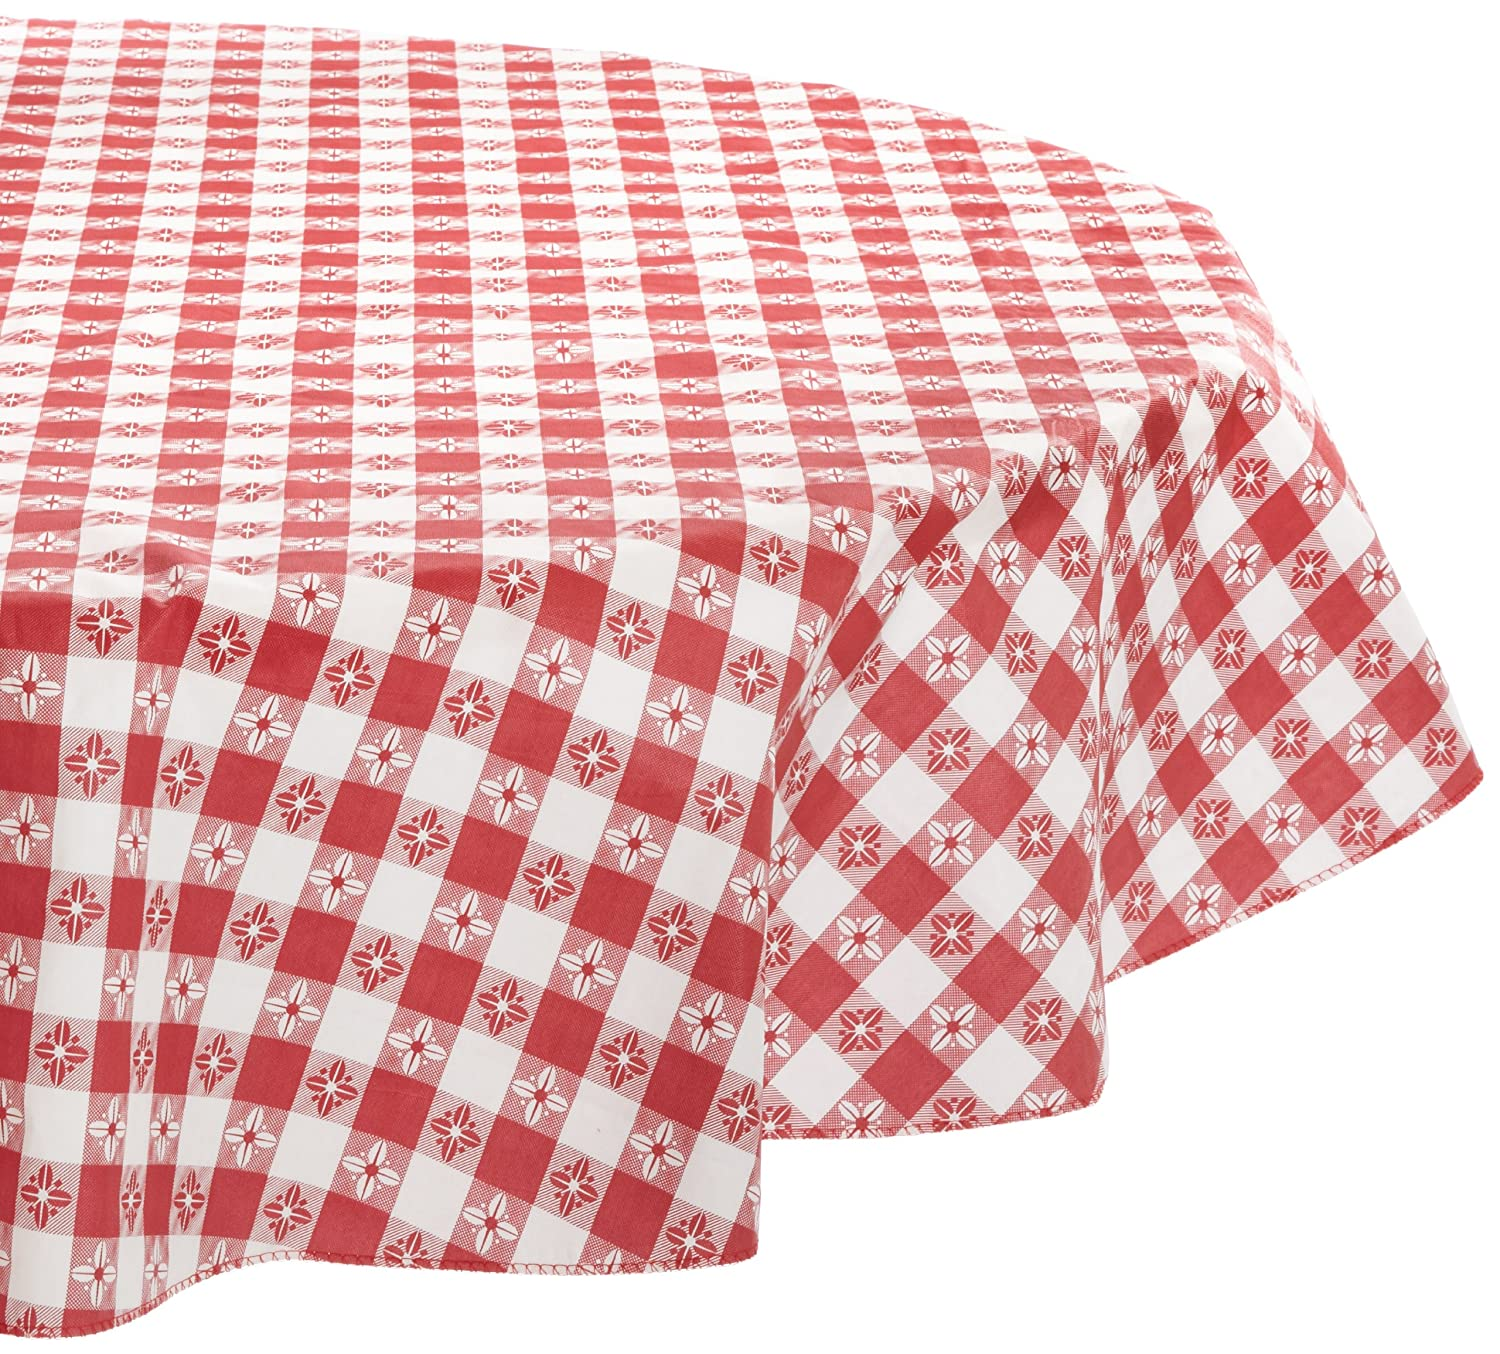 Amazon.com: Kane Home Products Eco Vinyl Tablecloth, Red Check, 60 Inch  Round: Home U0026 Kitchen